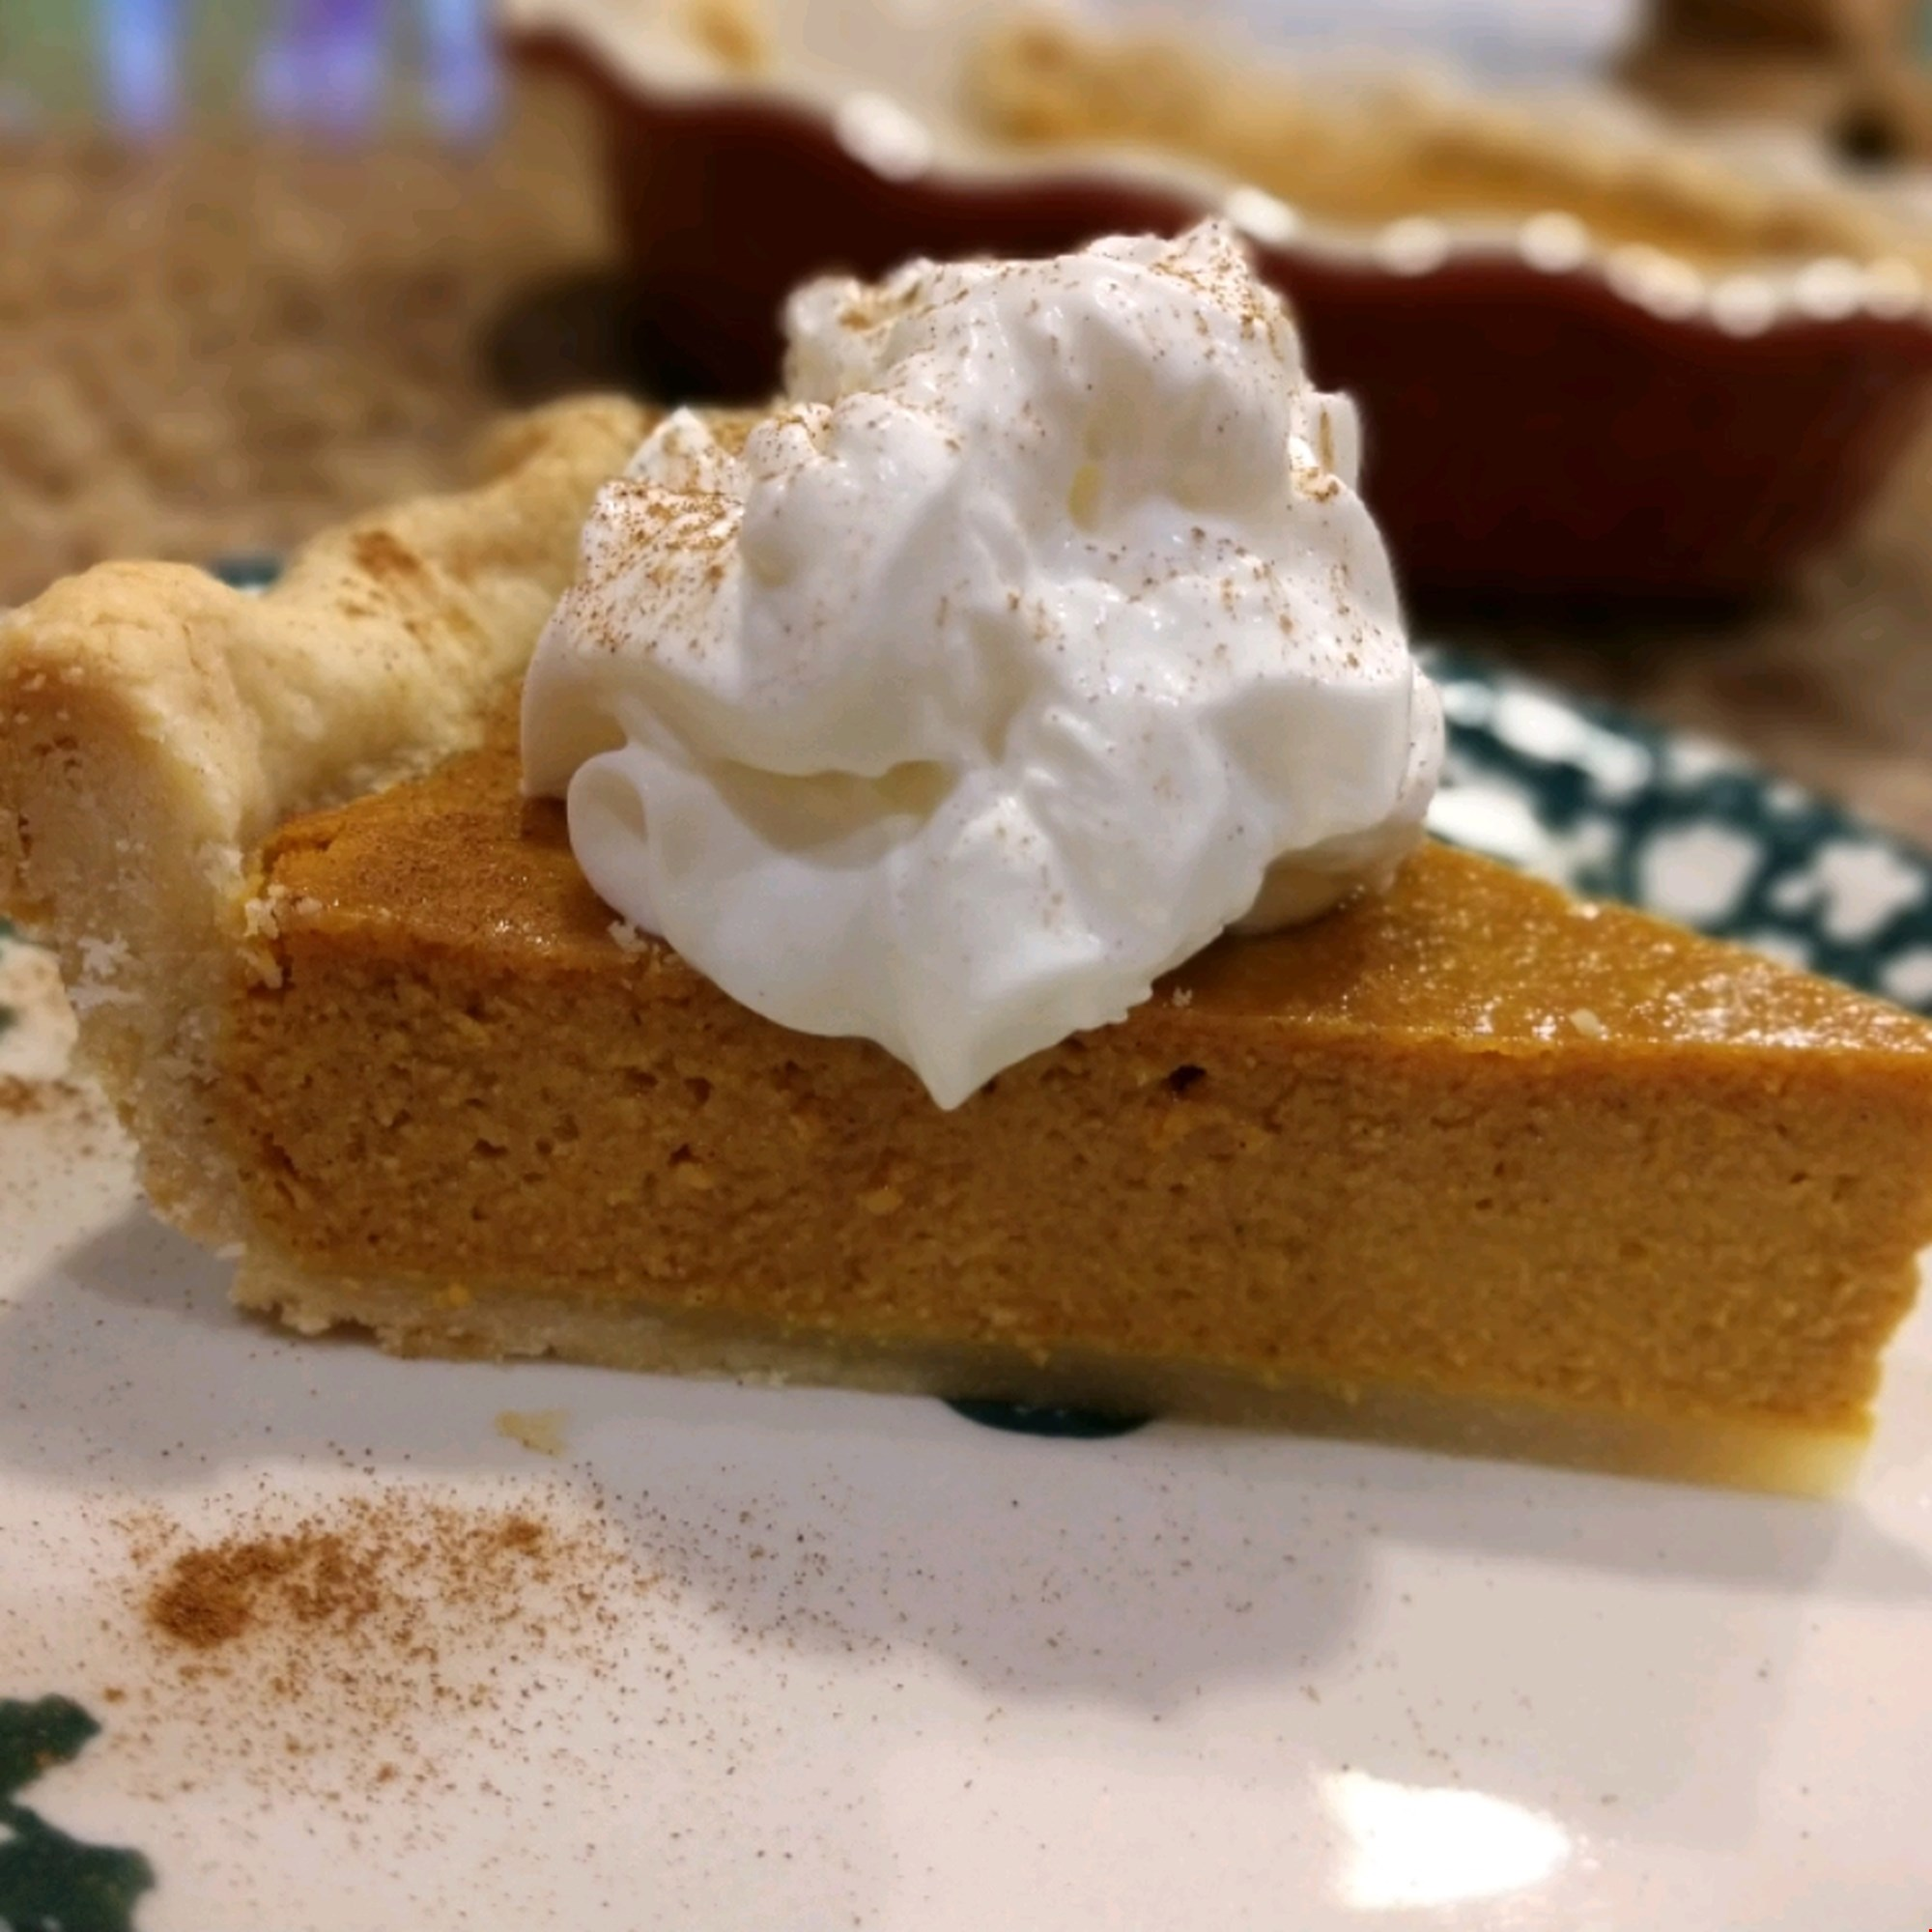 Pumpkin Pie with whipped cream and cinnamon on paper plate